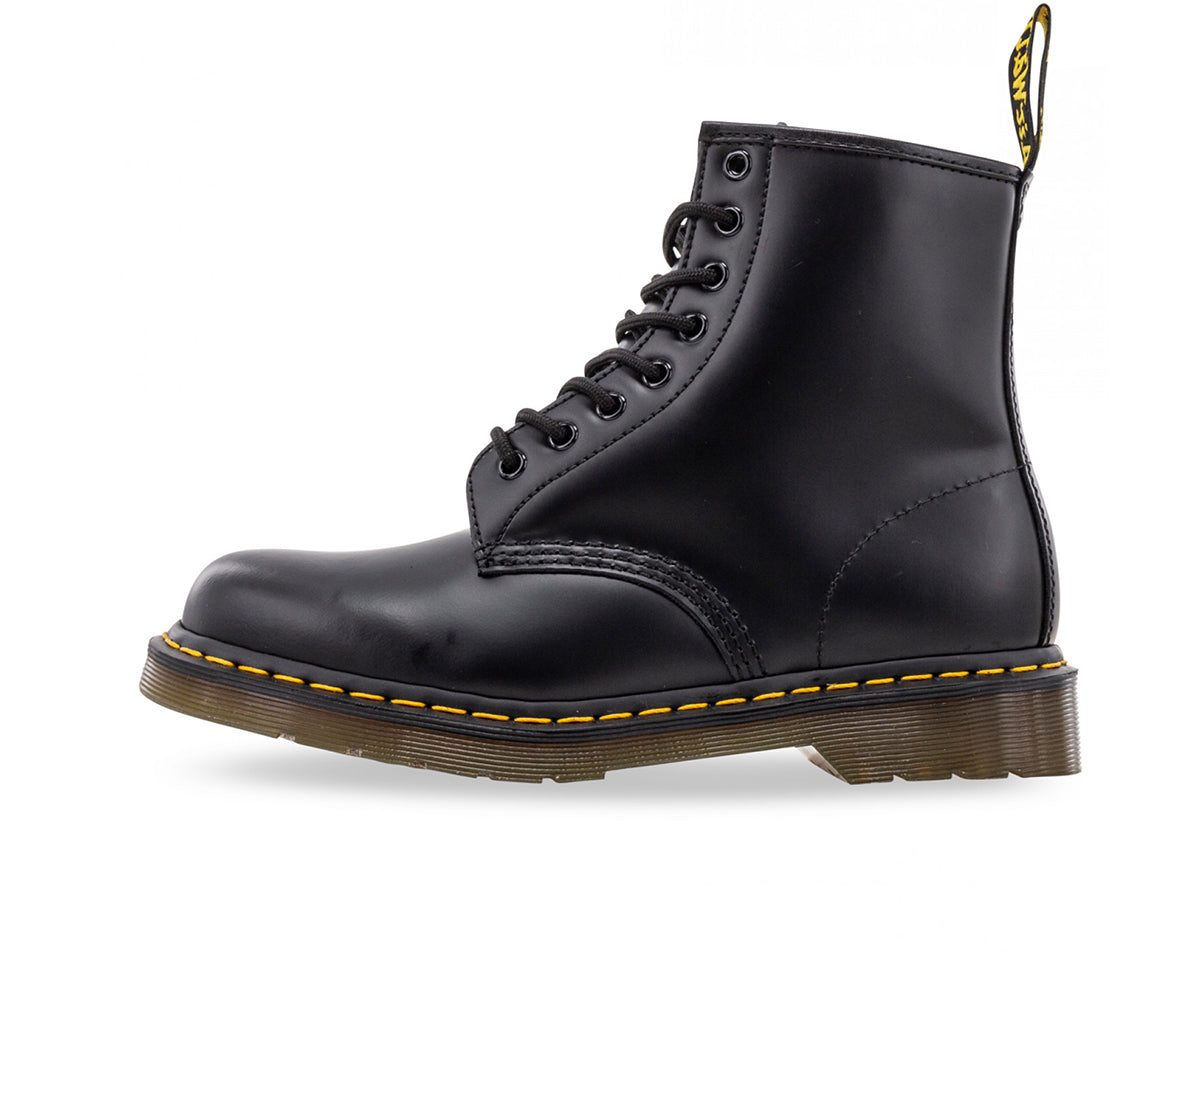 Dr. Martens 1460 8 Eye Boot- Smooth